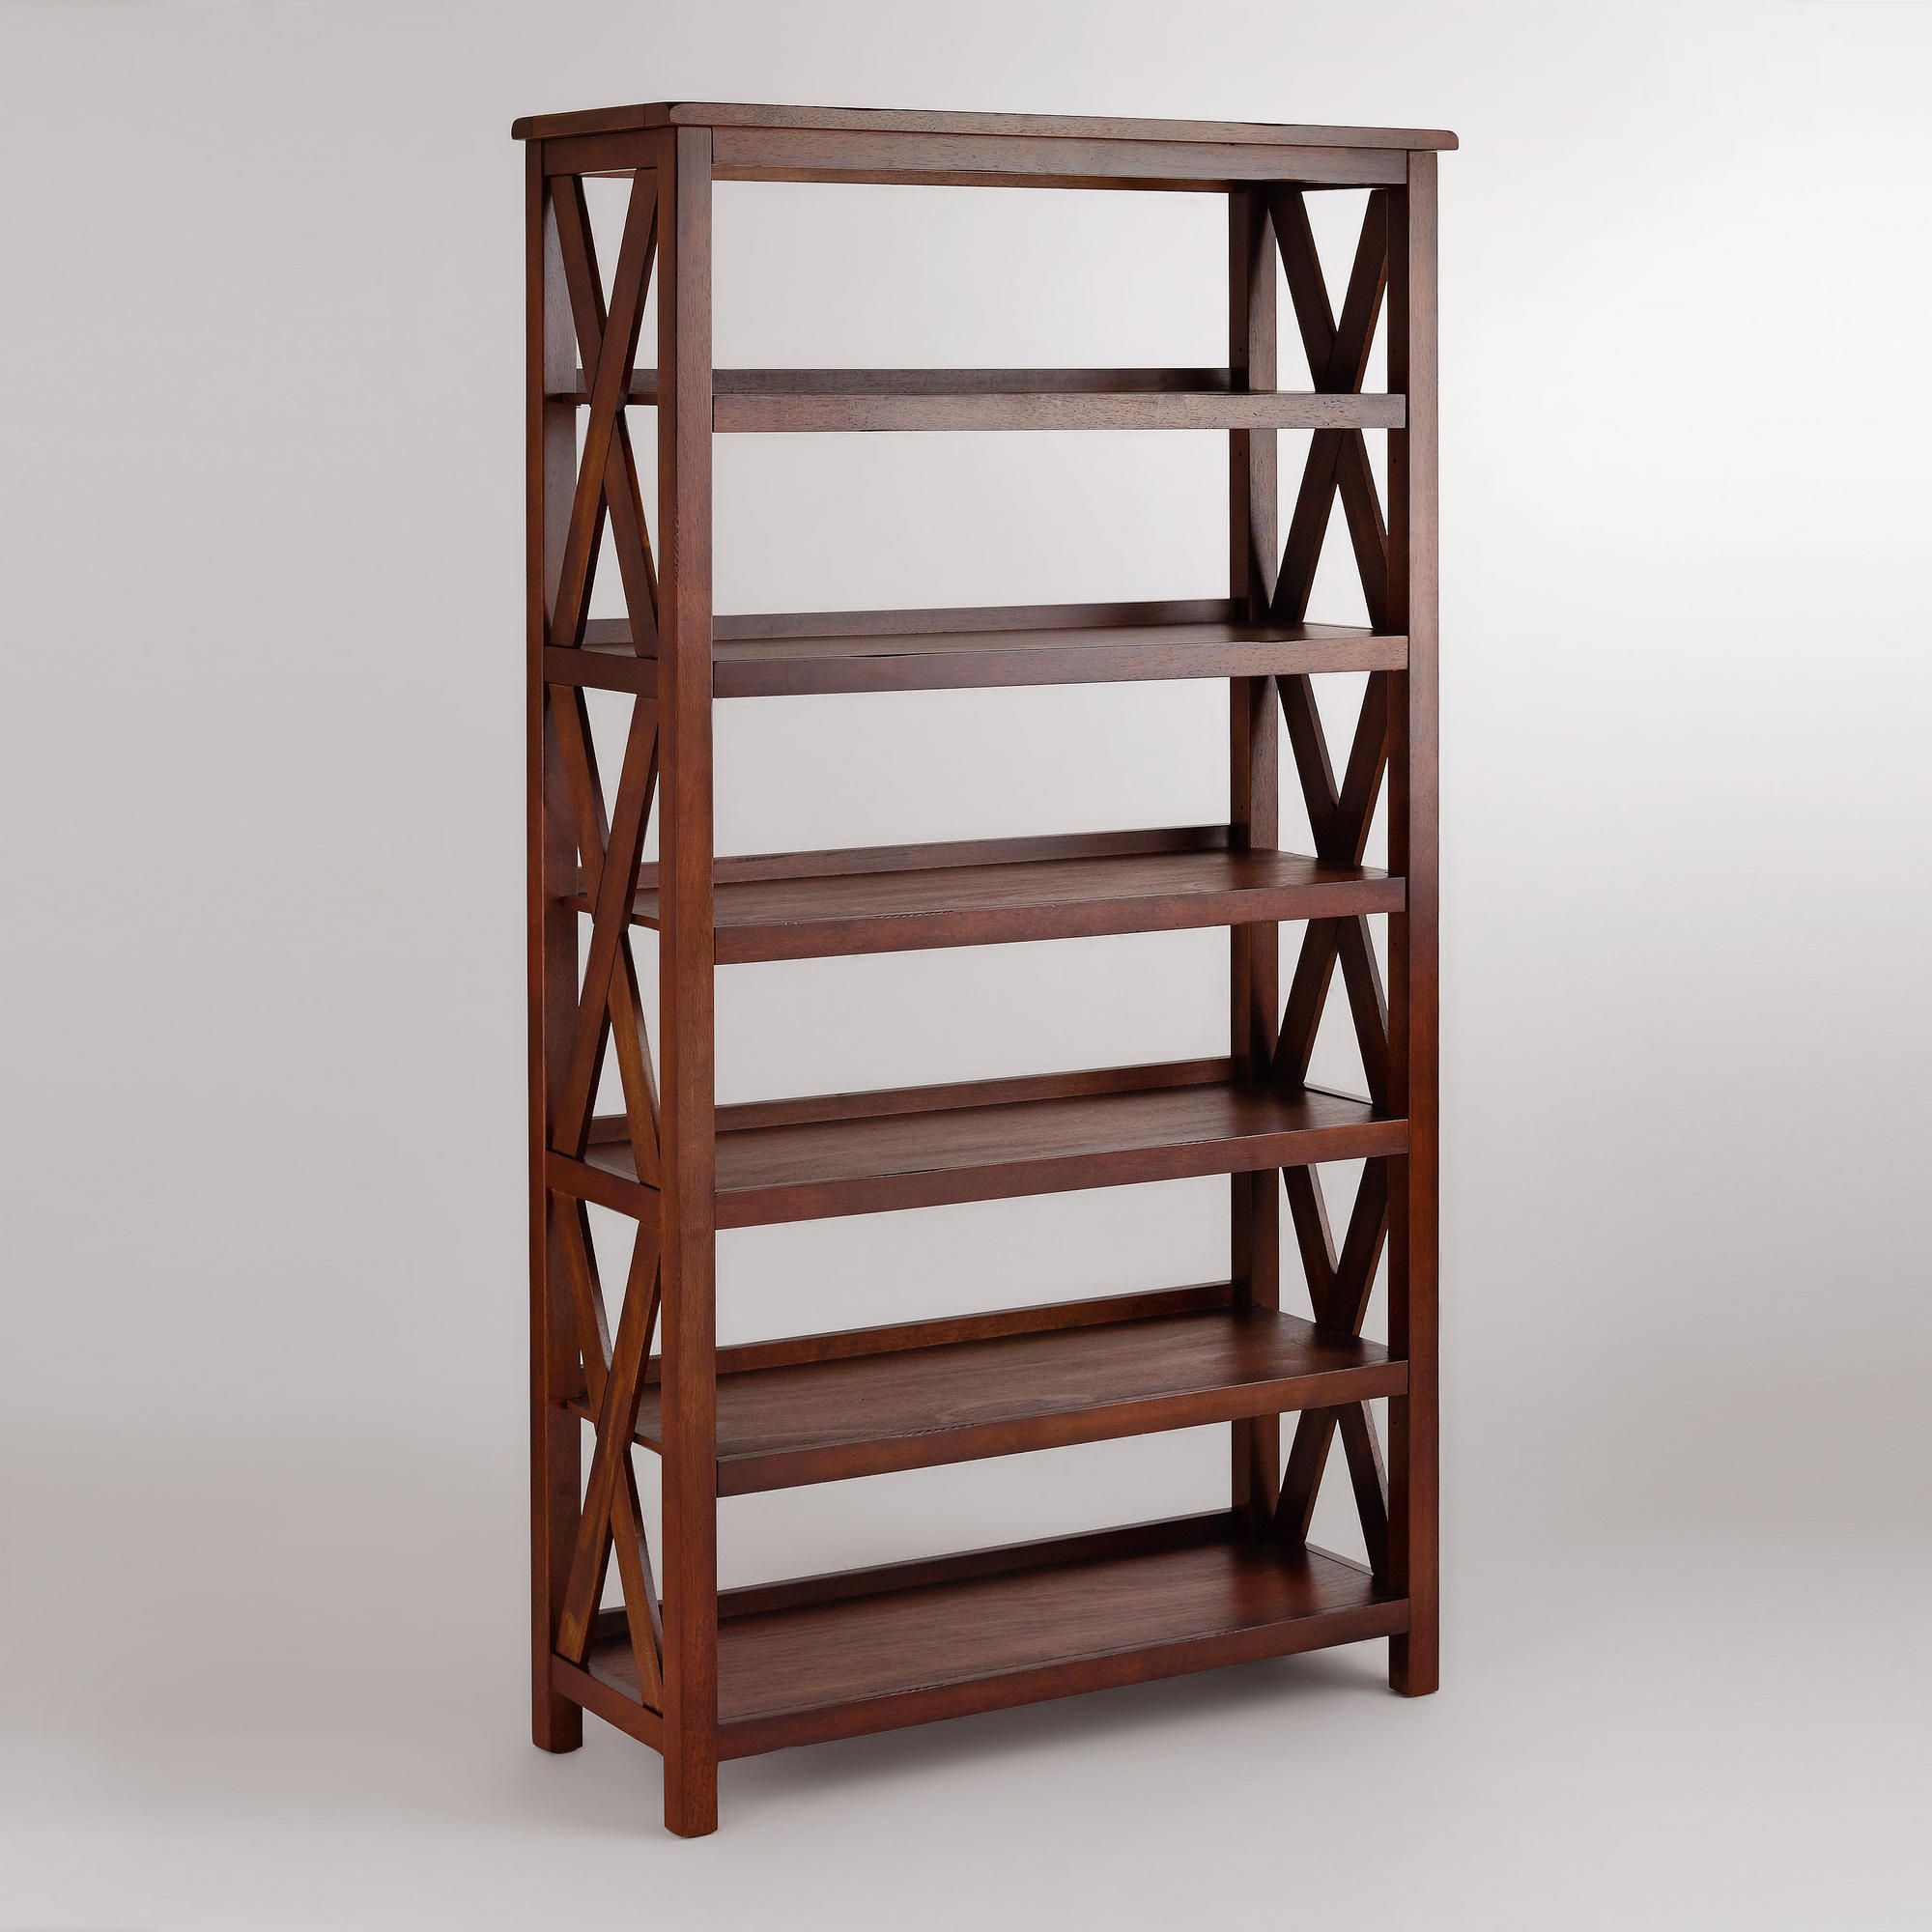 bookshelves books for astounding sale contemporary bookcase buy wooden black design bookshelf online